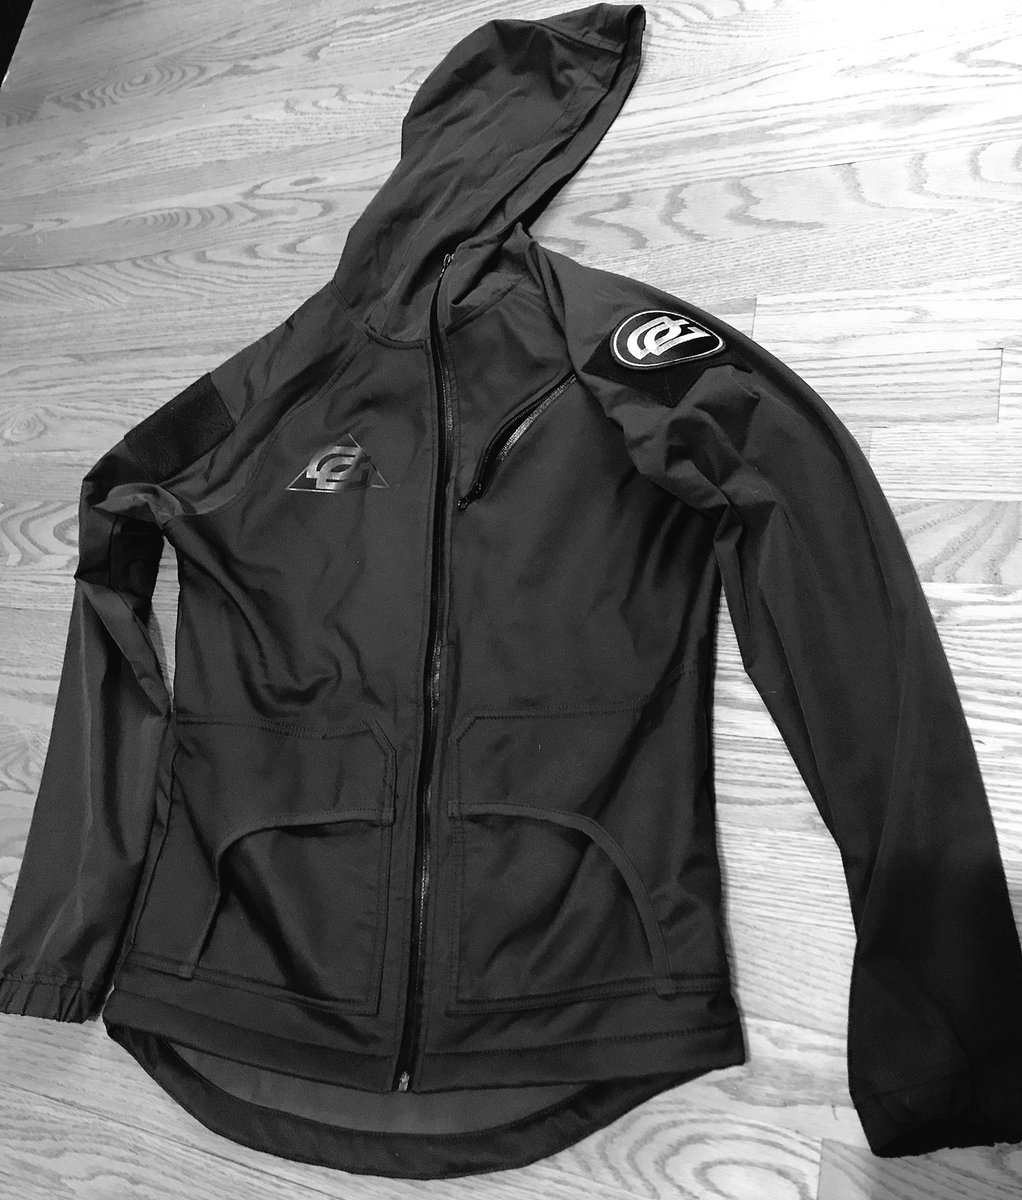 Friday giveaway! 2 lucky Followers who RT this, will win a brand new OpTic Player Jacket! Winner announced next Friday! RT RT RT RT RT🔥🔥